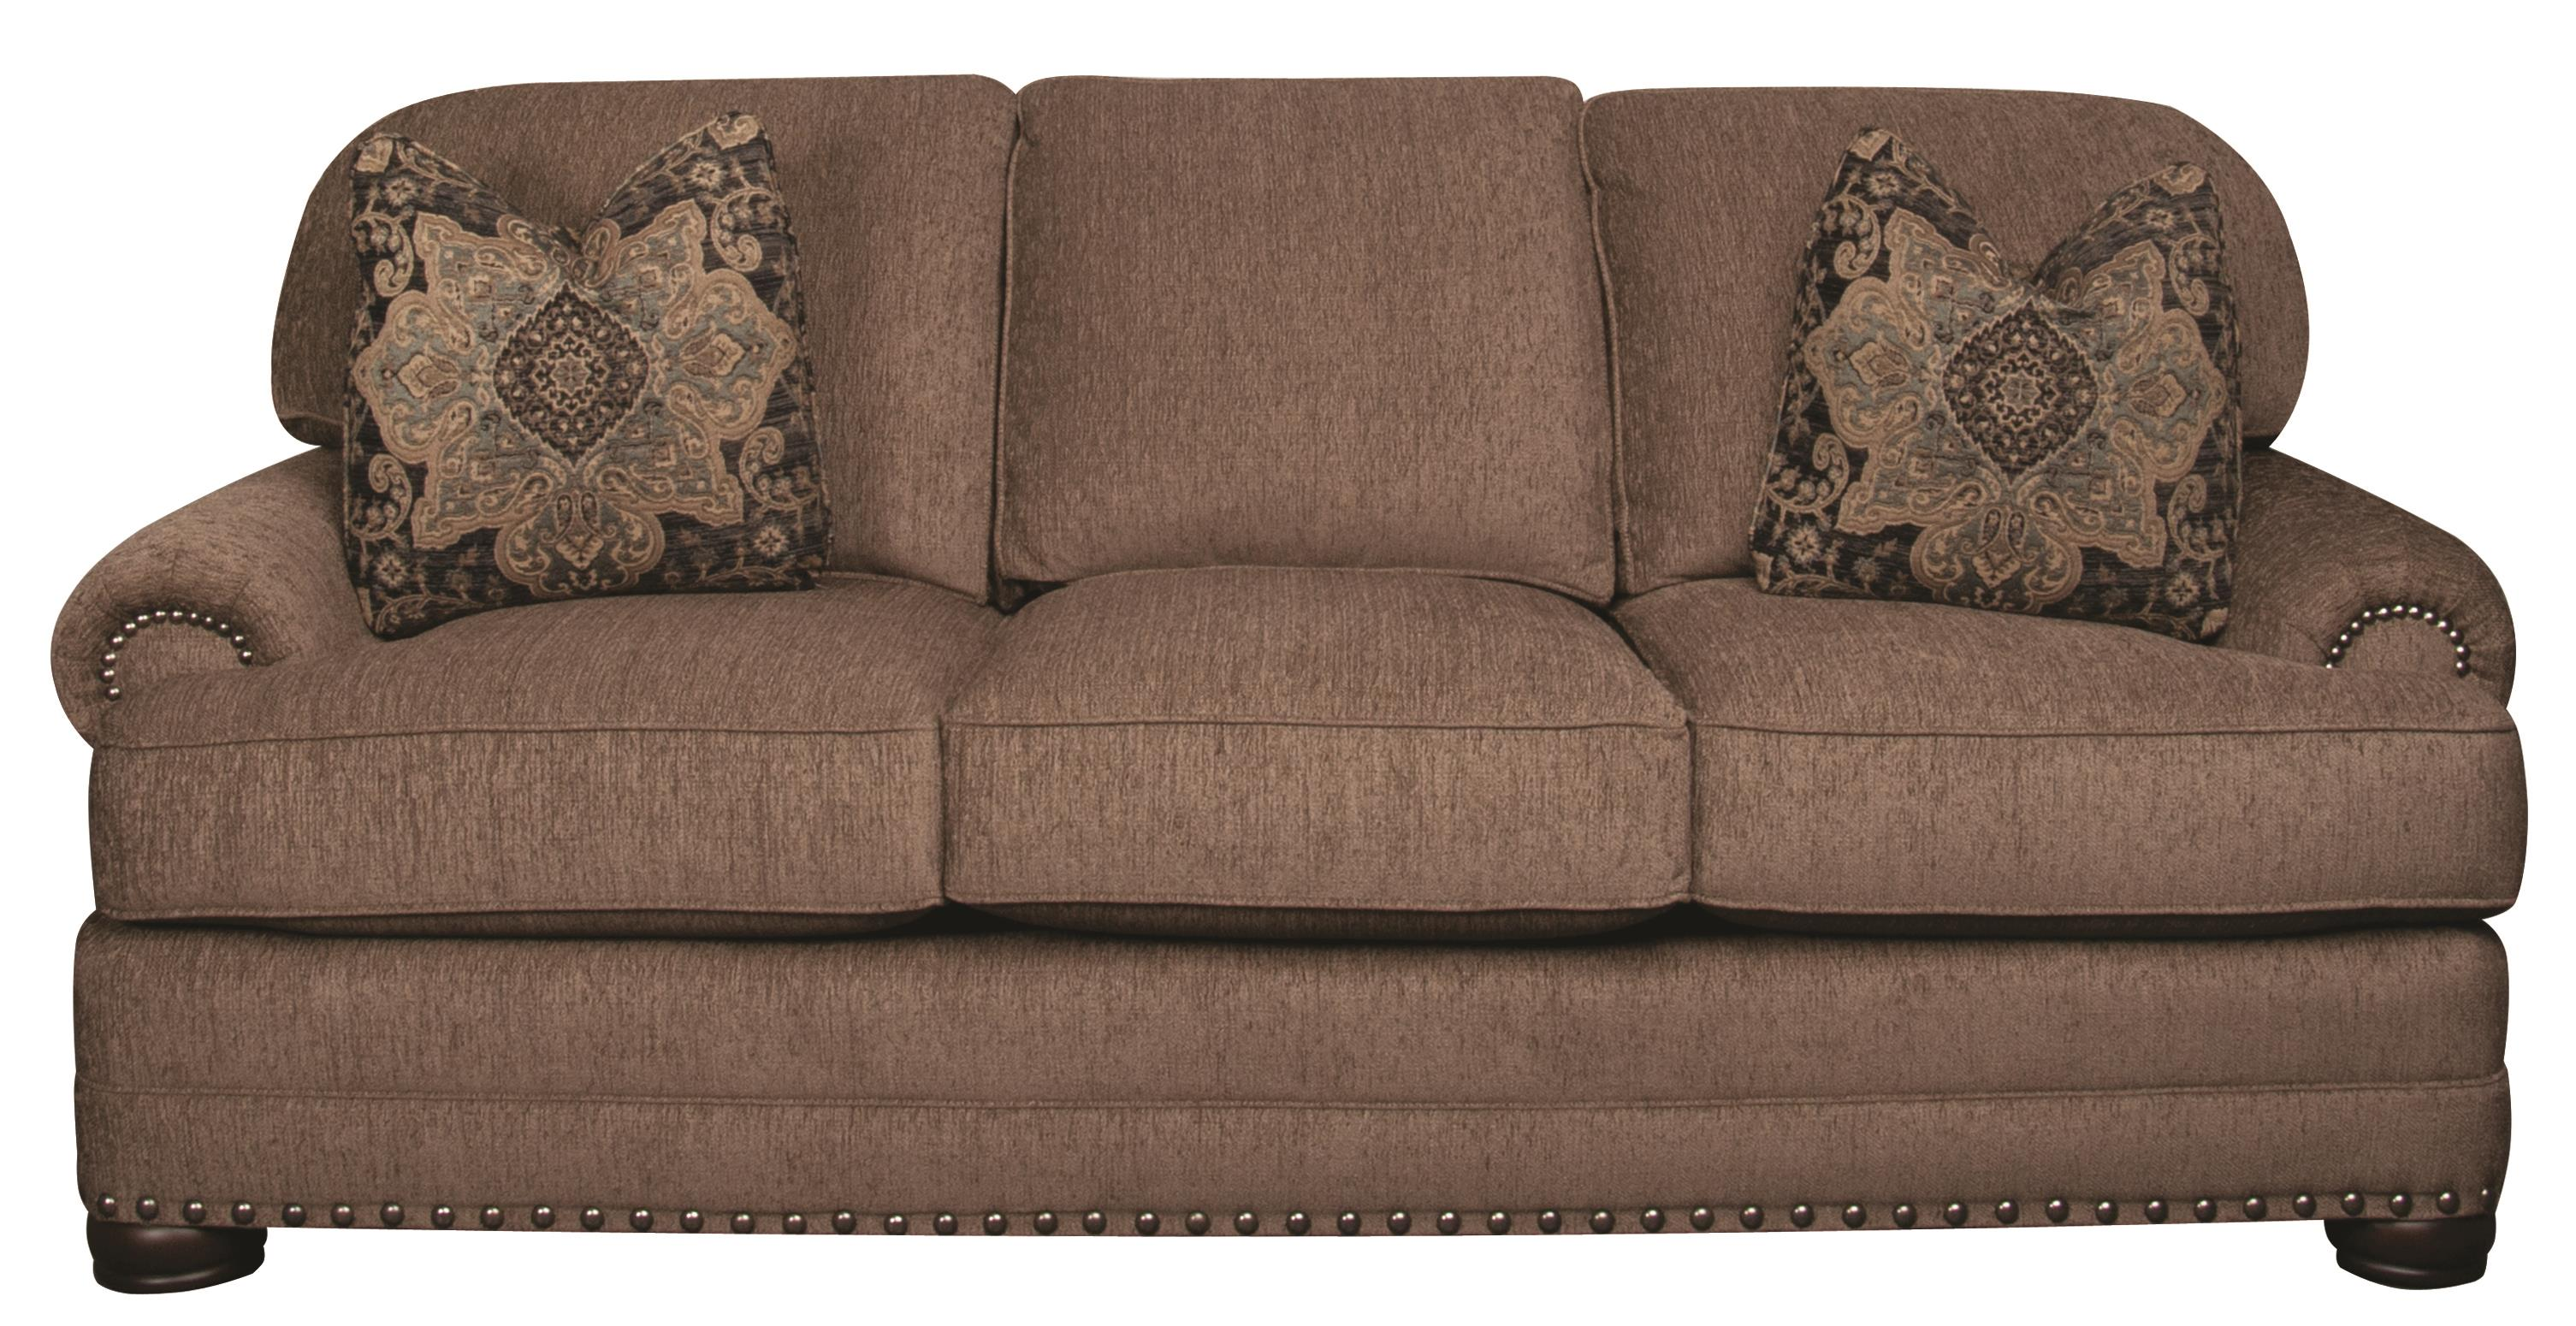 Morris Home Furnishings Duke Duke Sofa - Item Number: 101275750